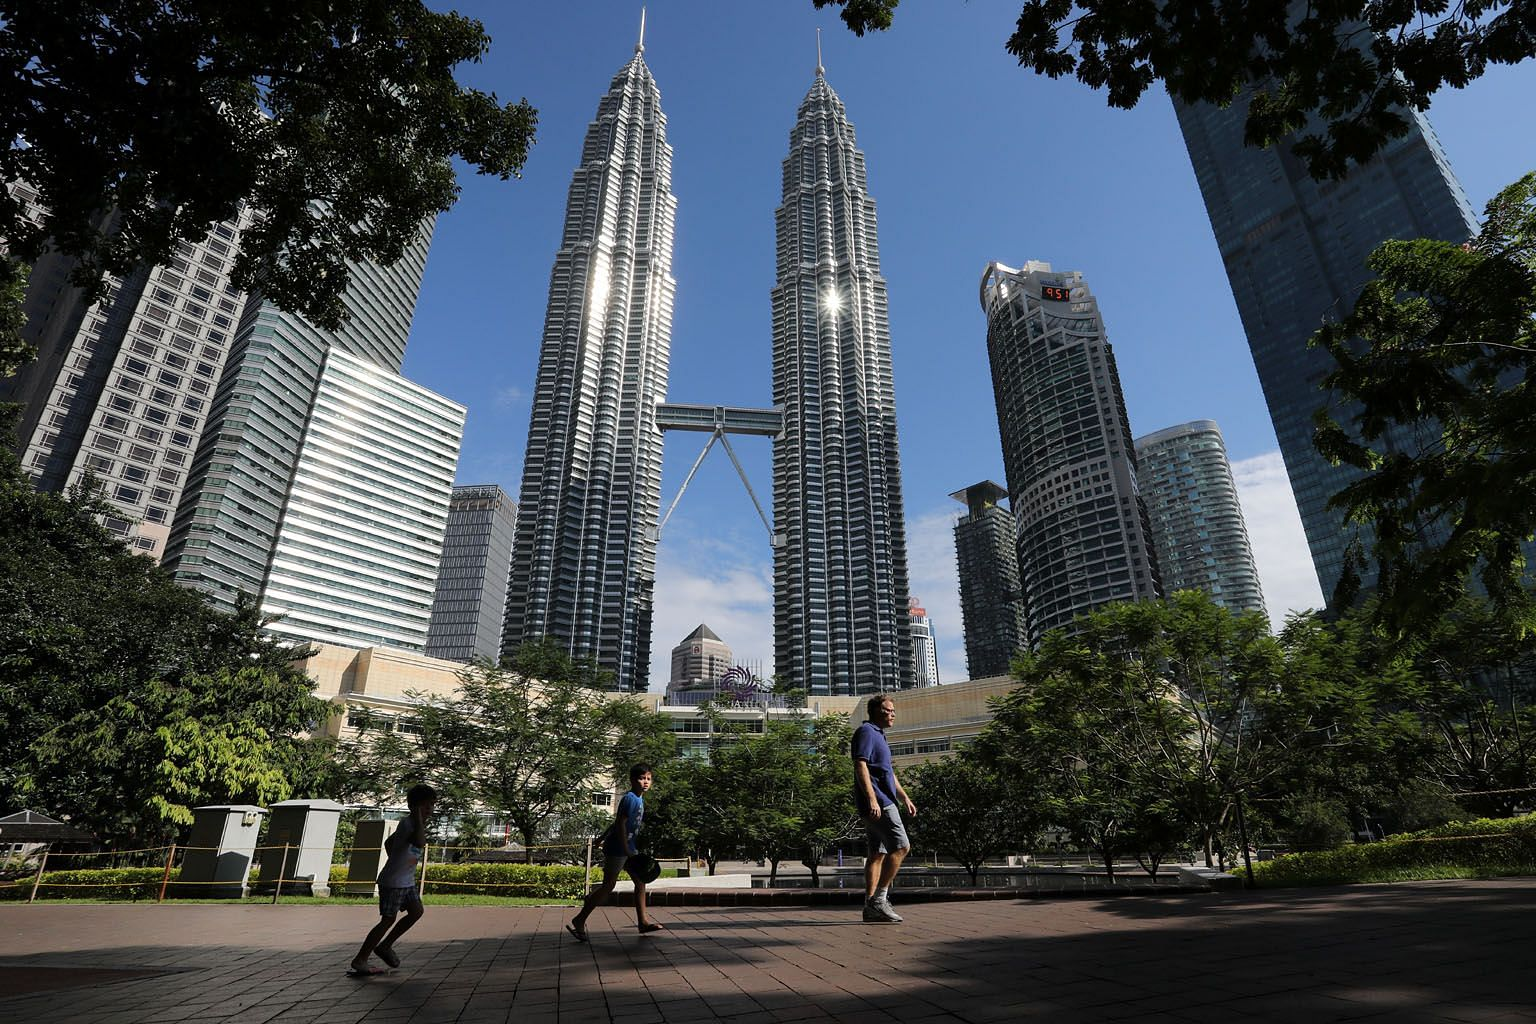 Wealthy Chinese investors are flocking to park their money in top-end property at home and overseas, including Kuala Lumpur (above) and Singapore, real estate agents say.